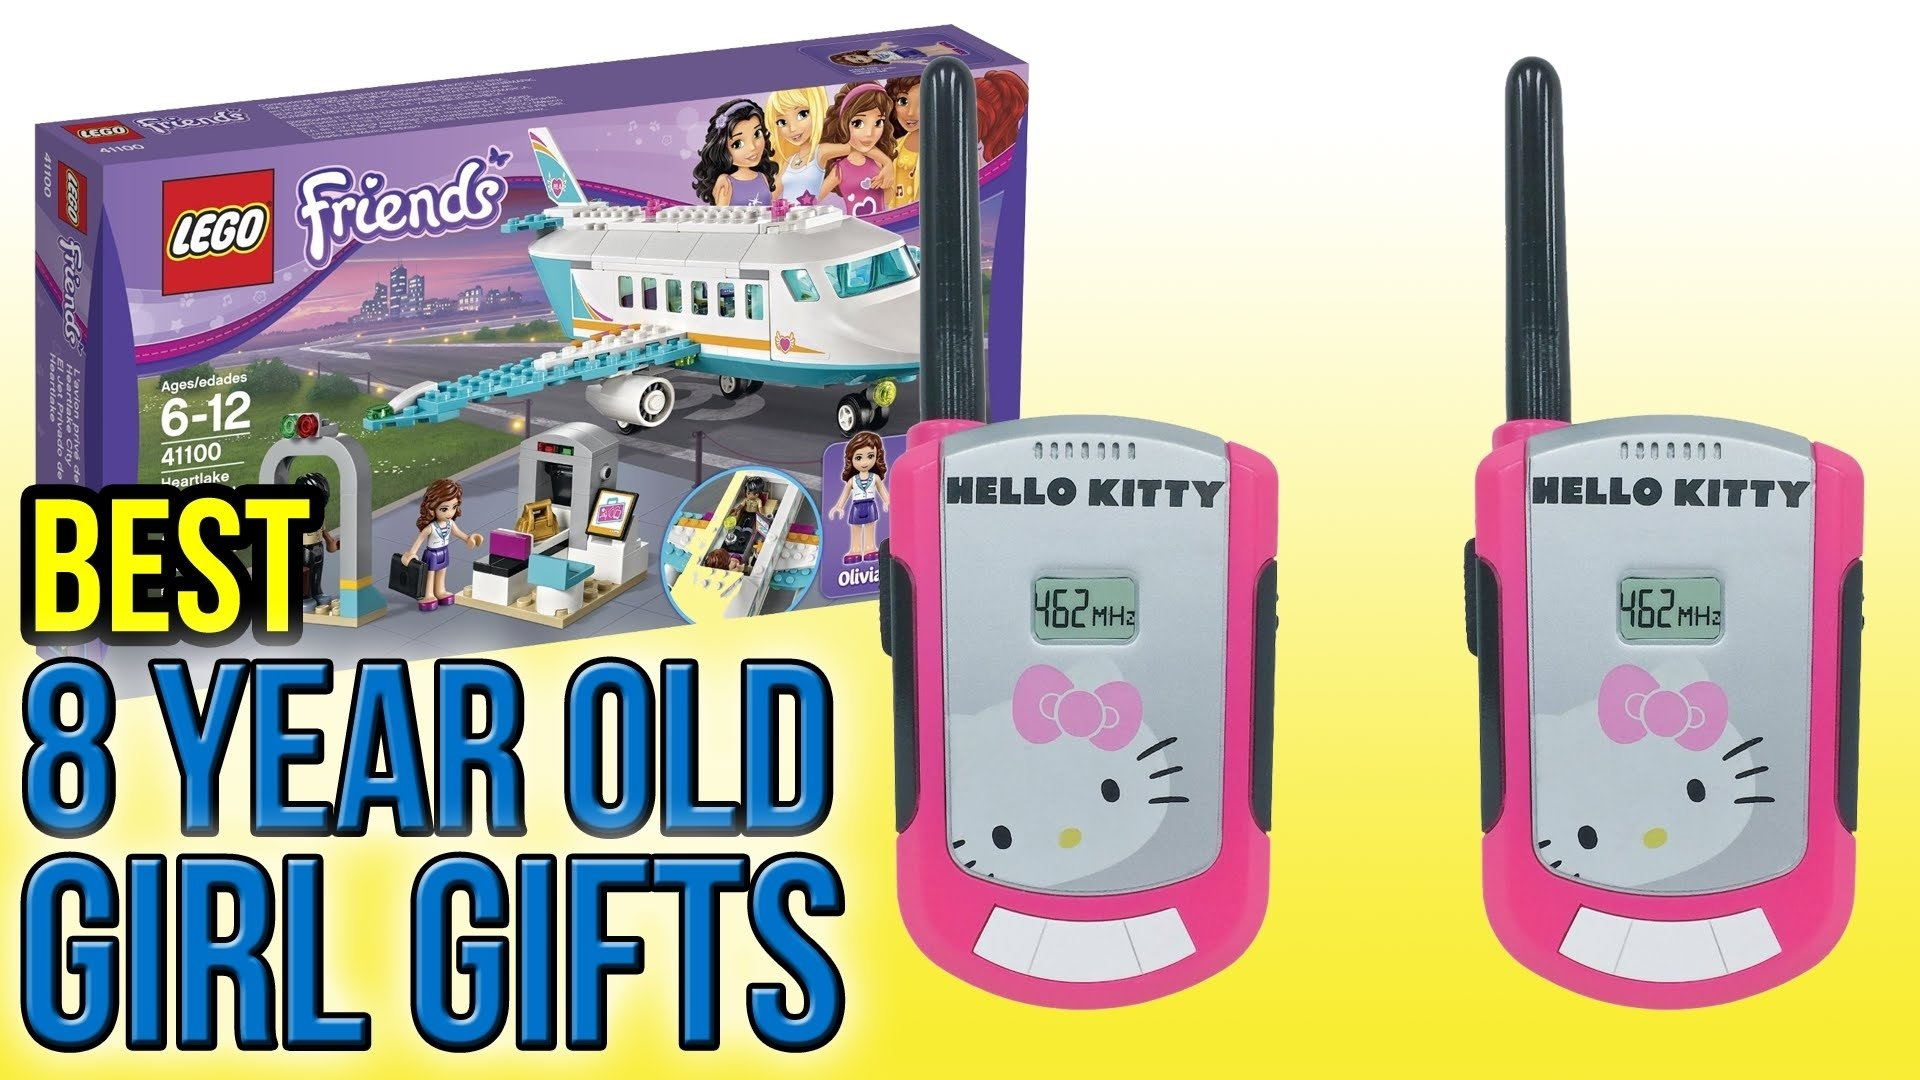 10 Wonderful Gift Ideas For 8 Year Old Girls 10 best 8 year old girl gifts 2016 youtube 3 2021